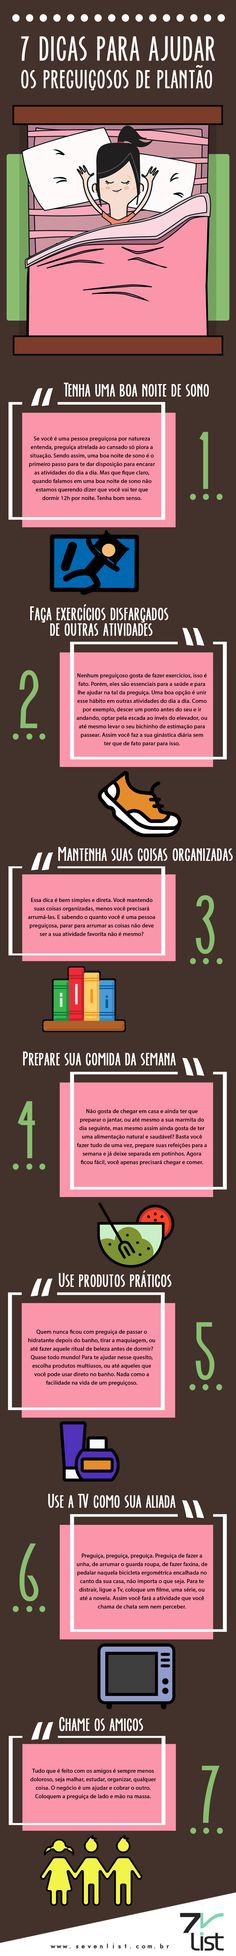 7 dicas para ajudar os preguiçosos de plantão Student Life, Study Tips, Better Life, Self Improvement, Good To Know, Personal Development, Helpful Hints, Life Hacks, Life Tips